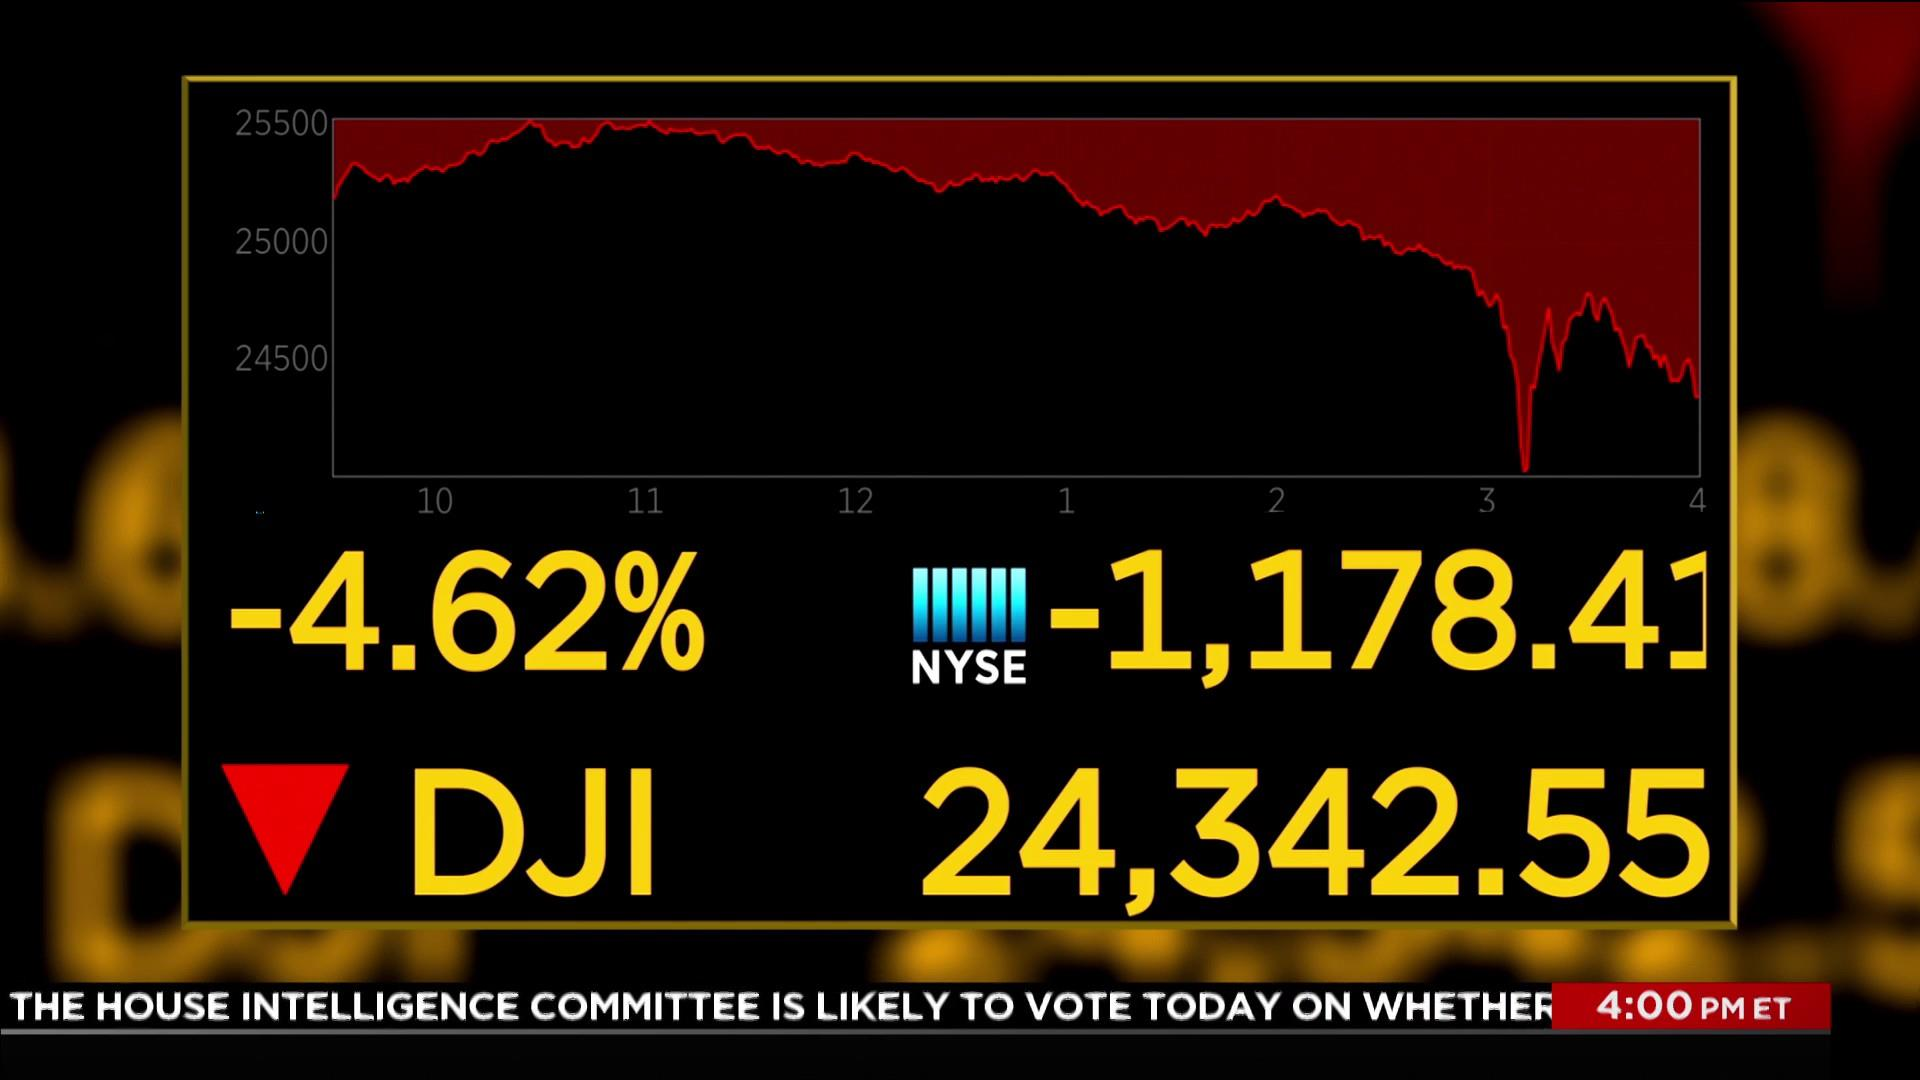 How will Trump deal with market drop?